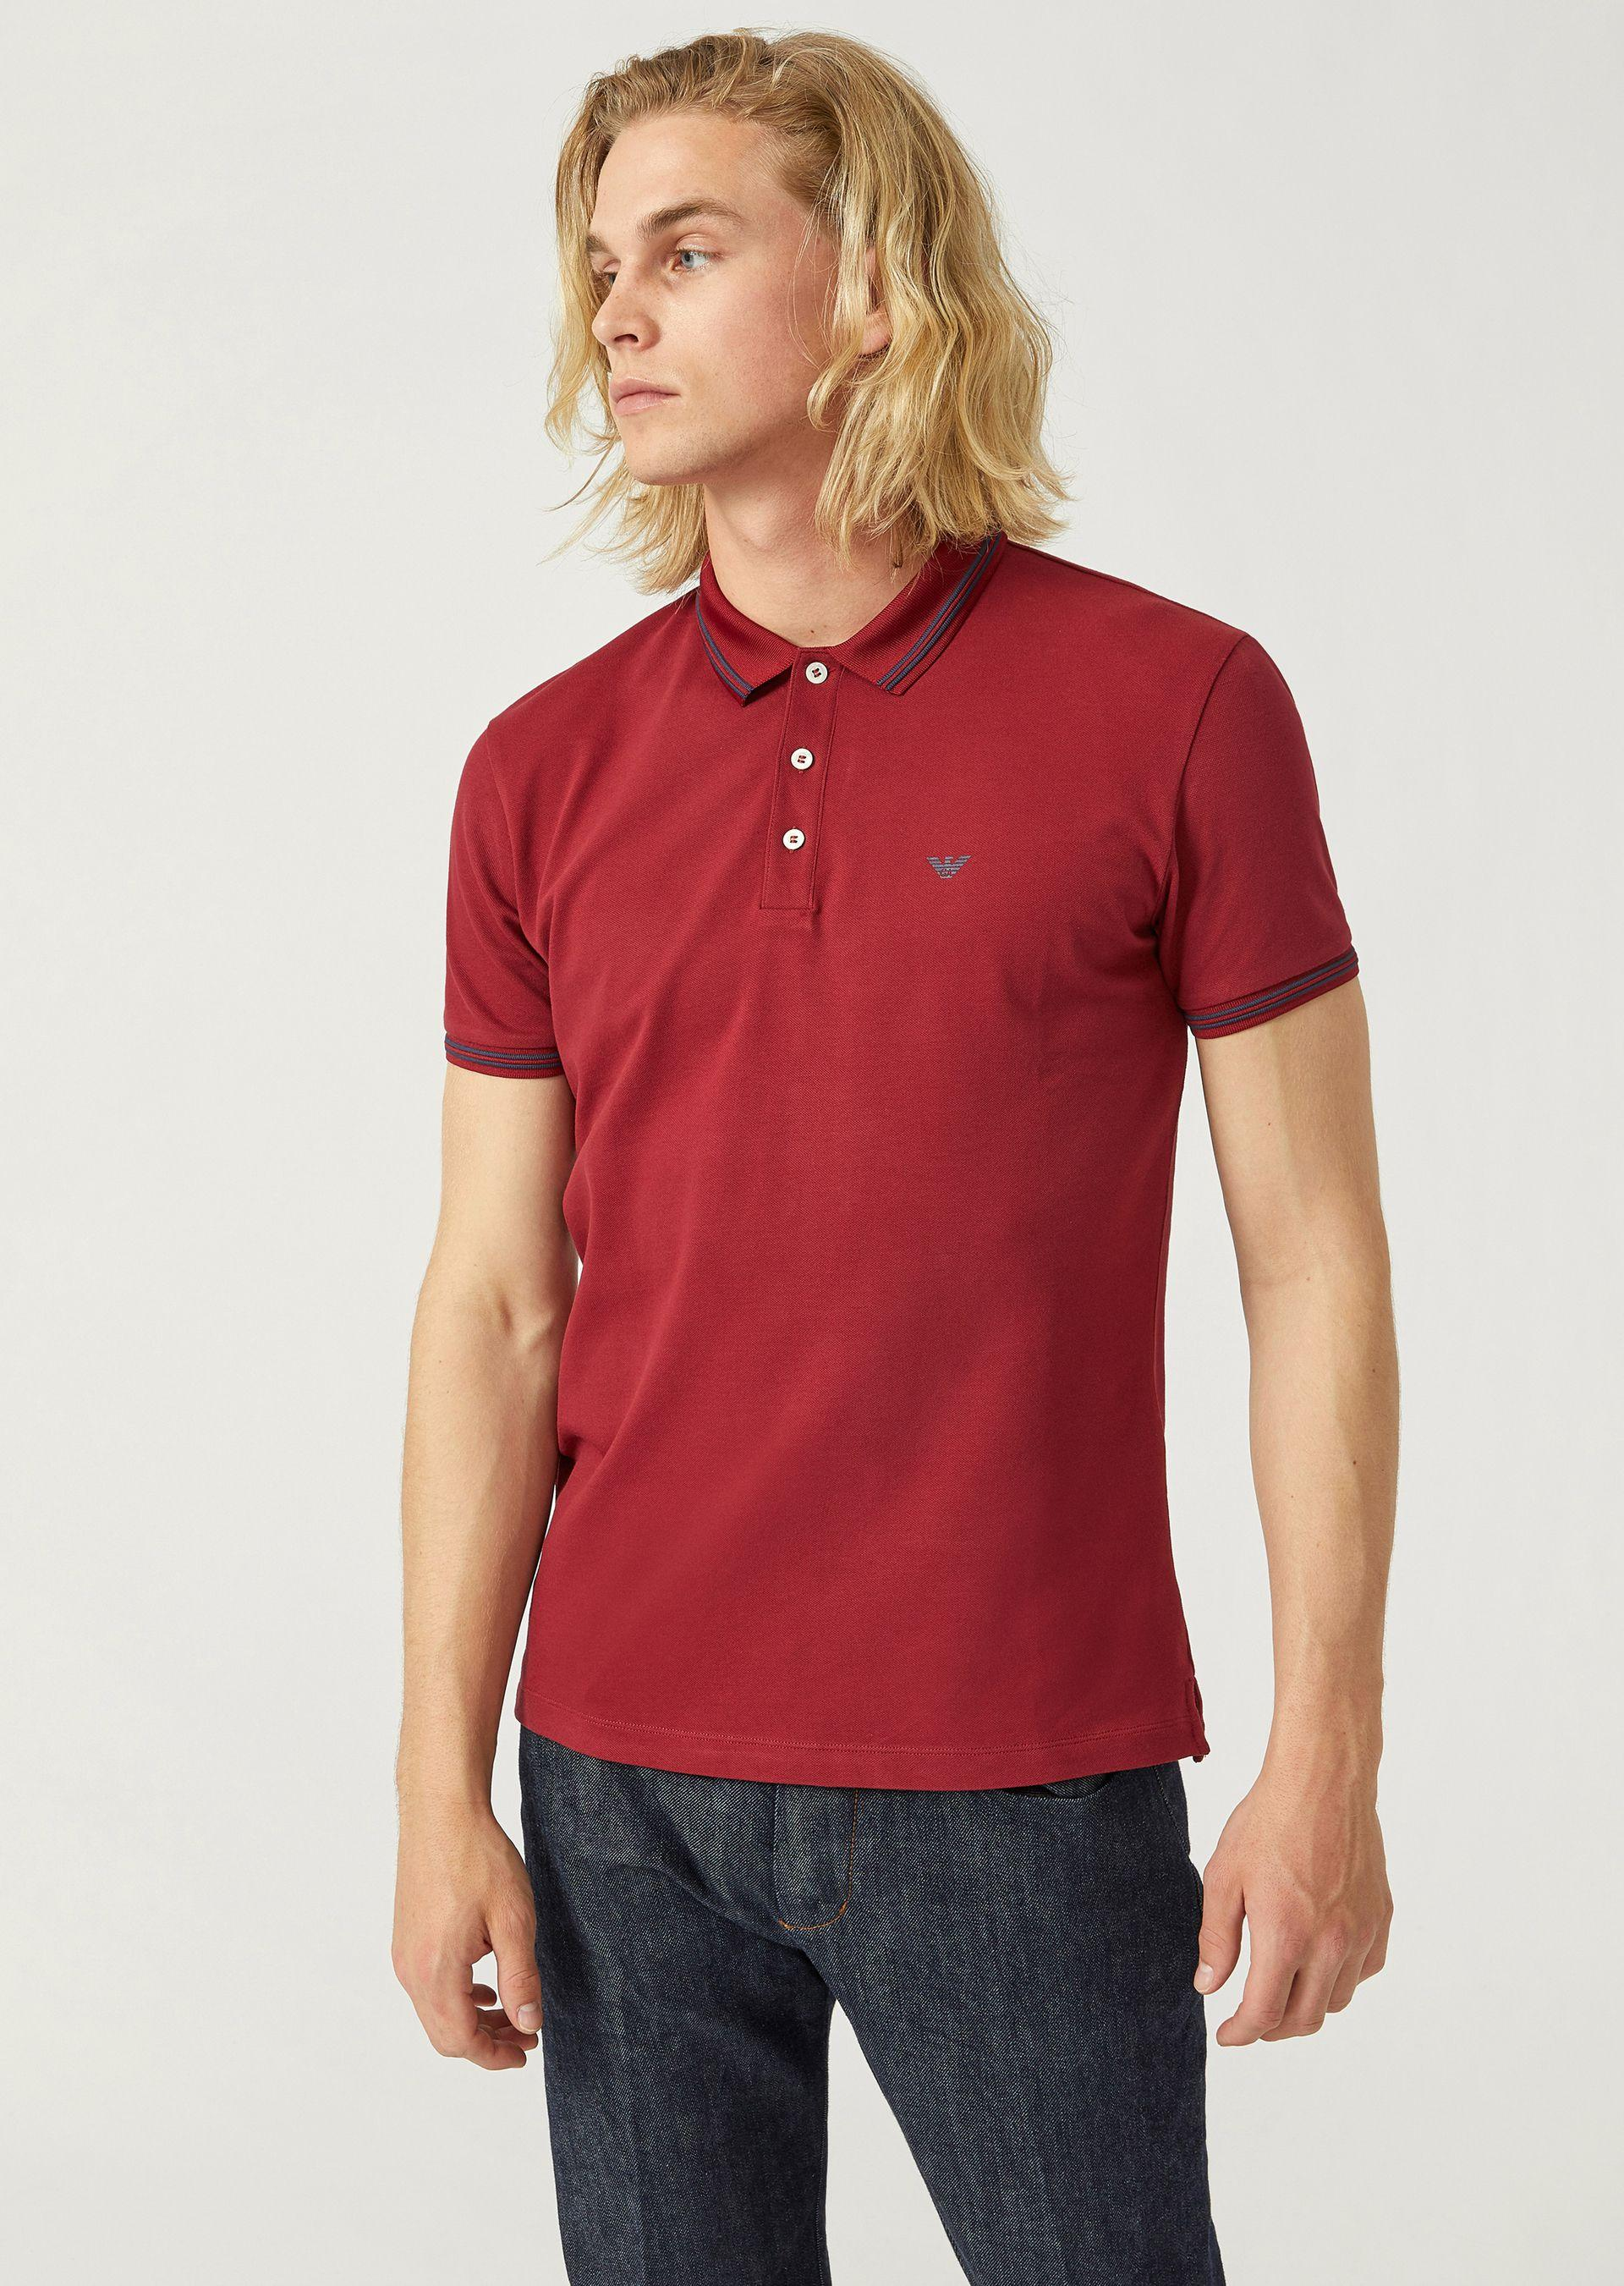 nueva estilos 5712d 5d7c5 Polo Shirts - Item 12227213 in Bordeaux